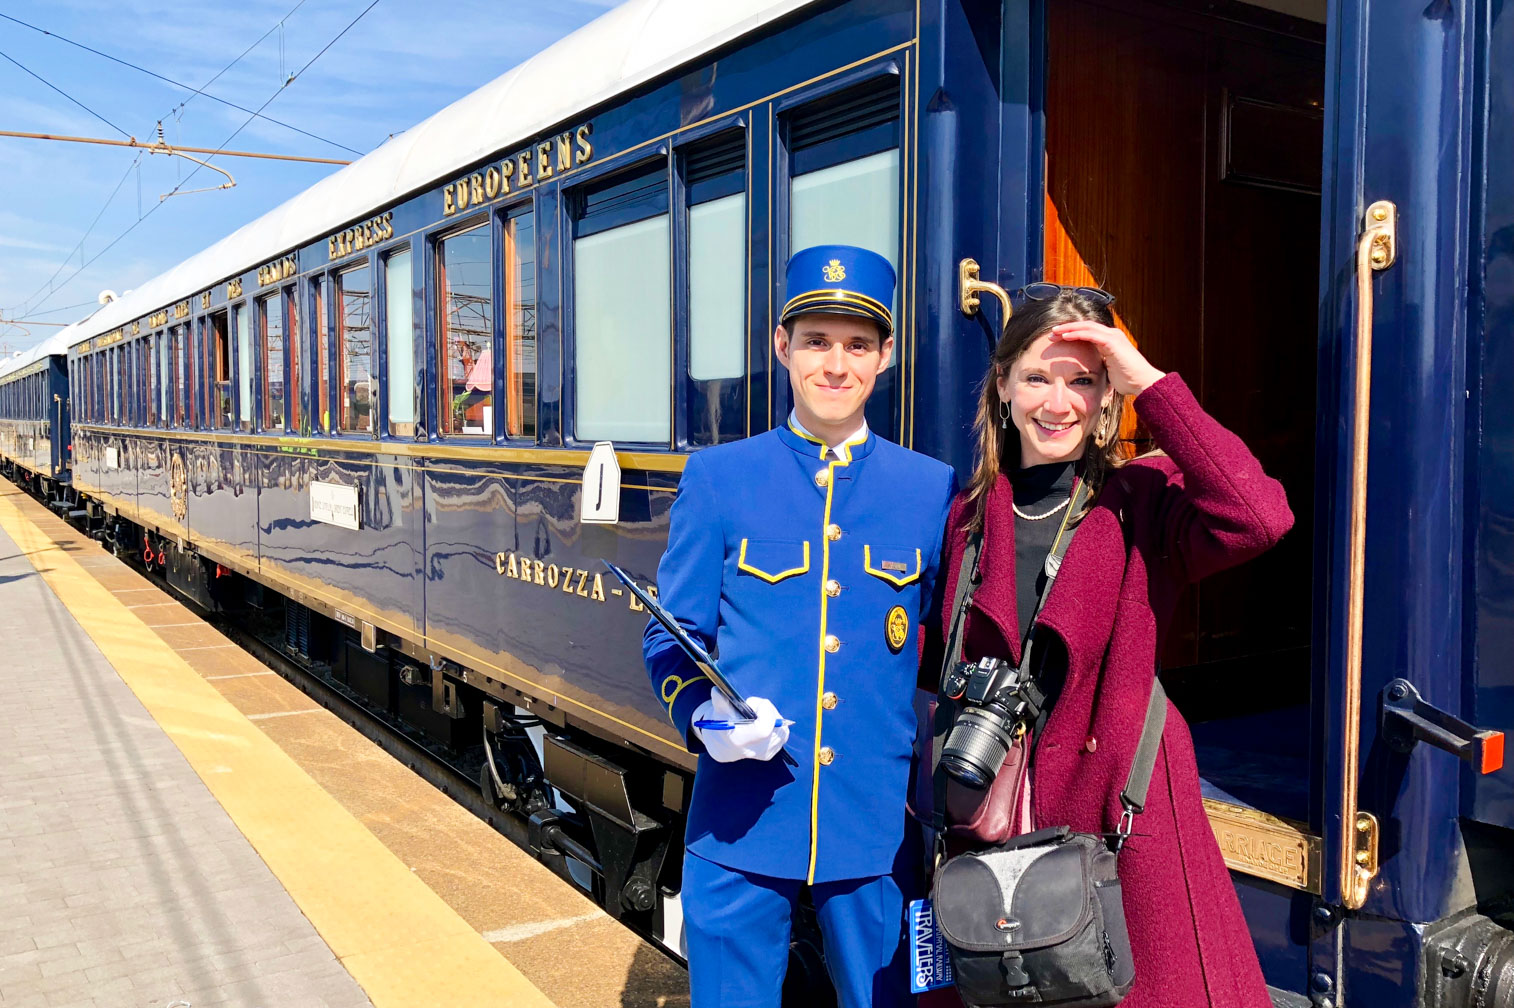 Staff and guest outside the Venice Simplon-Orient-Express (VSOE) train